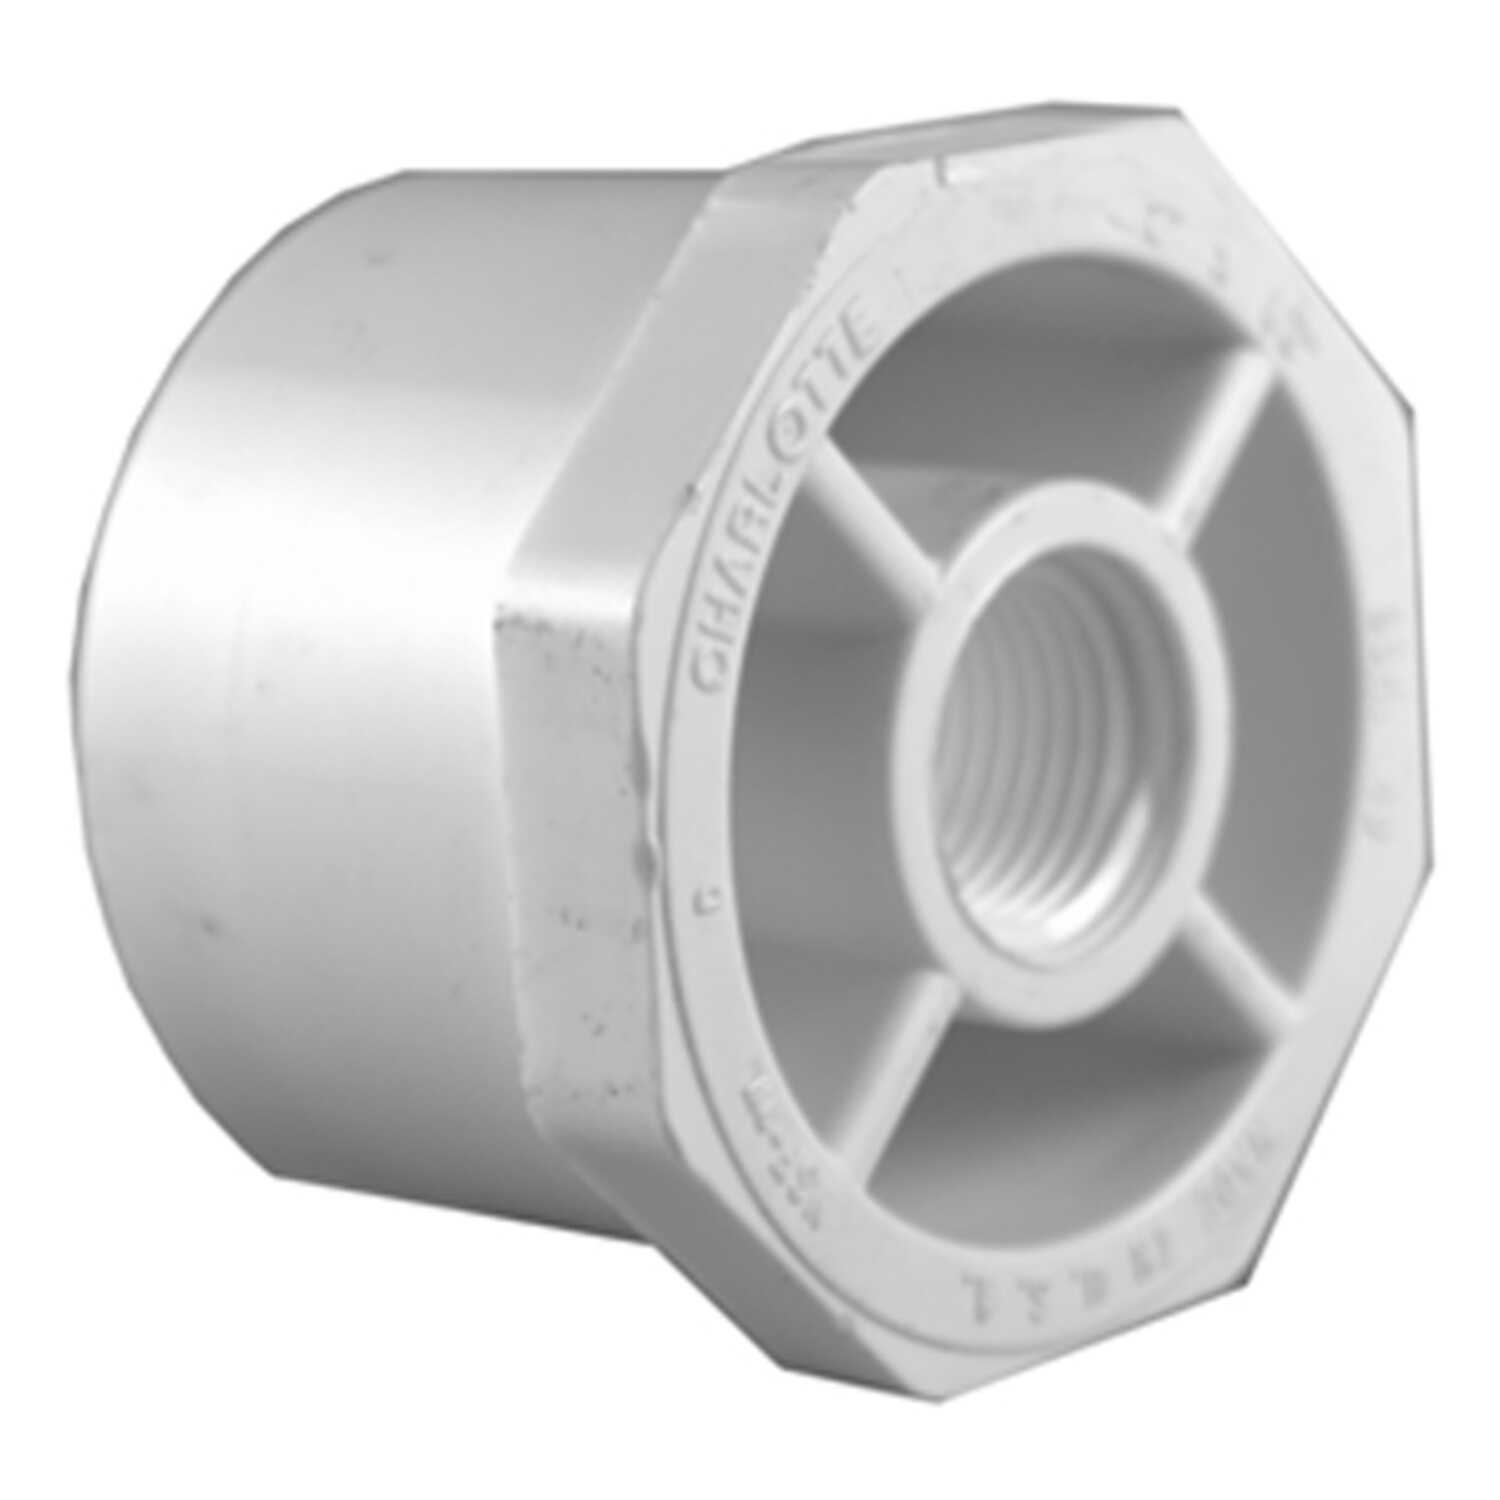 Charlotte Pipe  Schedule 40  2 in. Spigot   x 1-1/4 in. Dia. FPT  PVC  Reducing Bushing